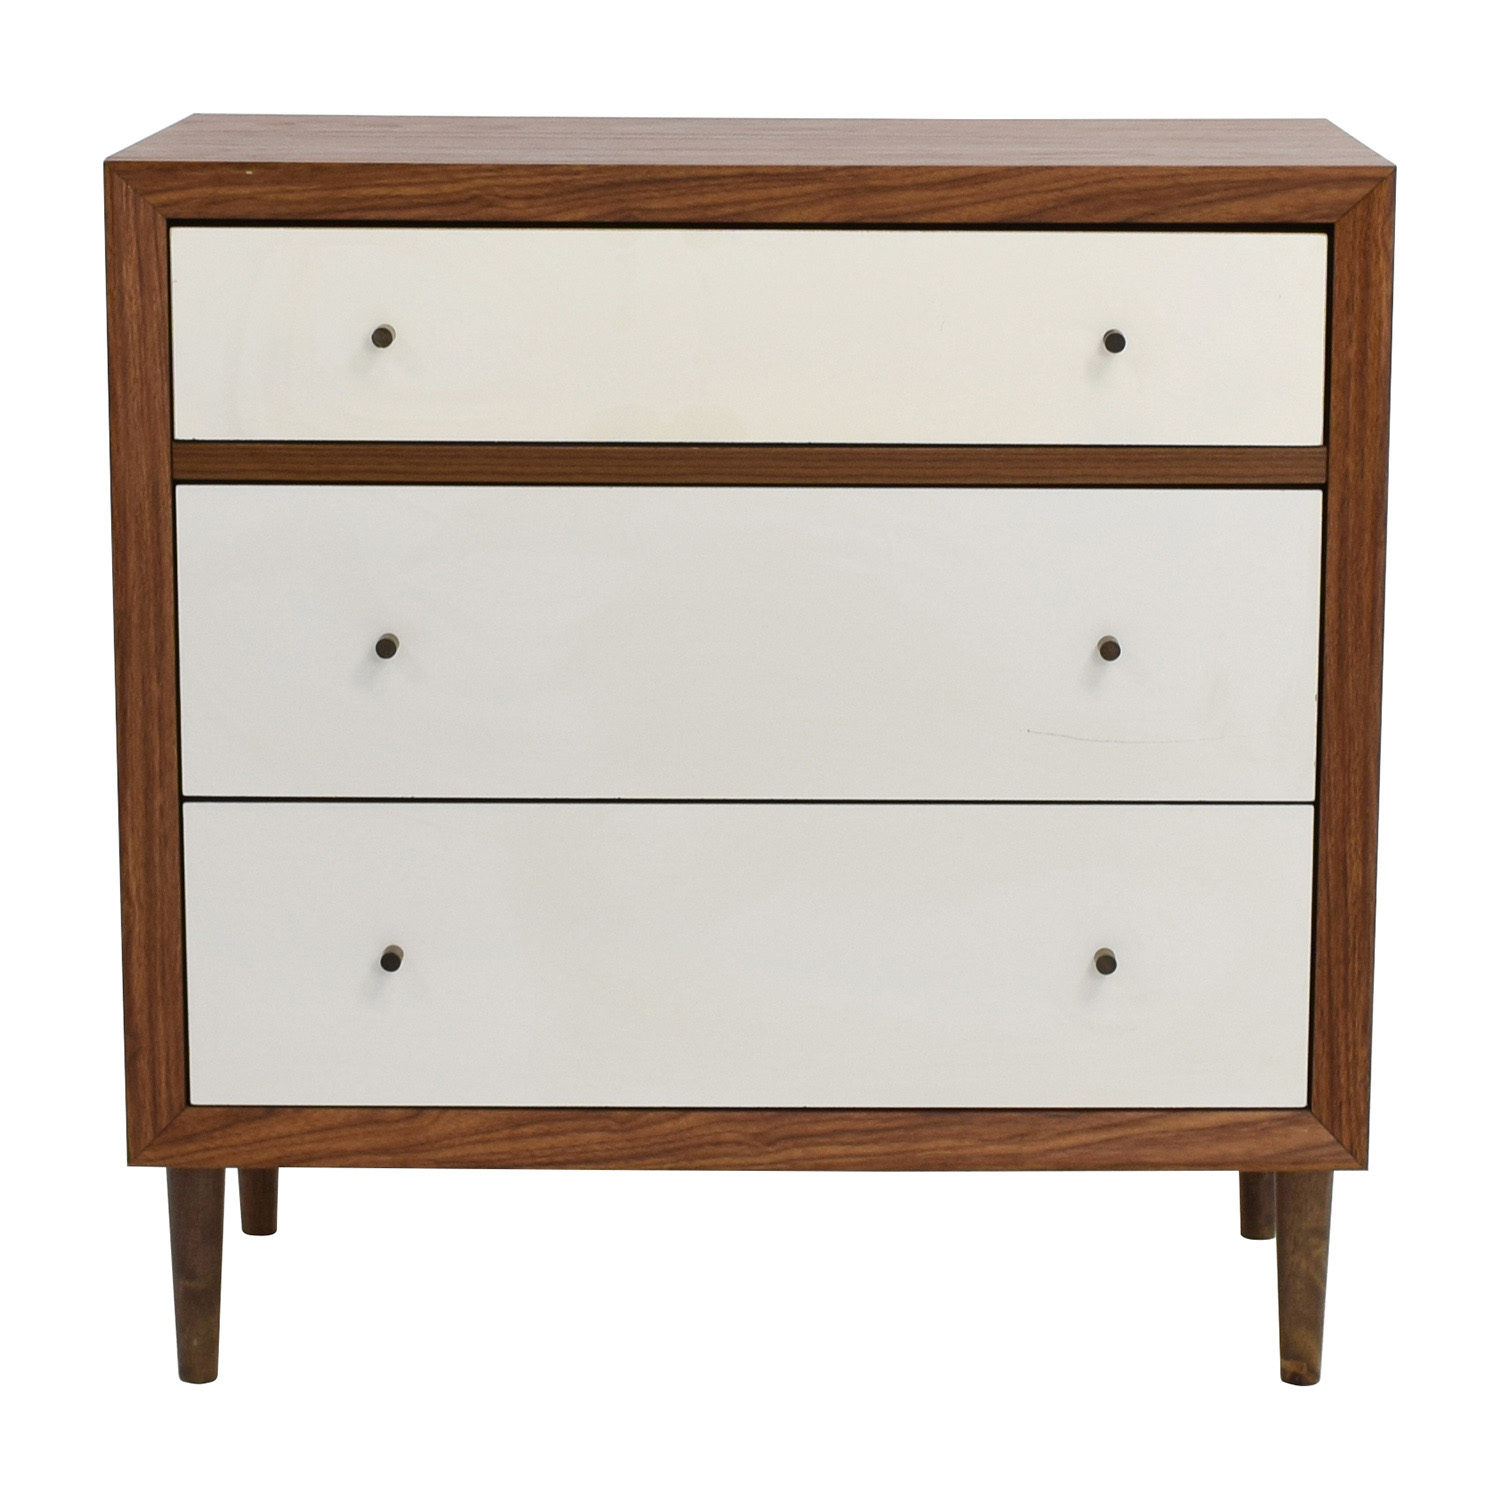 Wayfair Wayfair Three-Drawer Two-Toned Chest Dresser